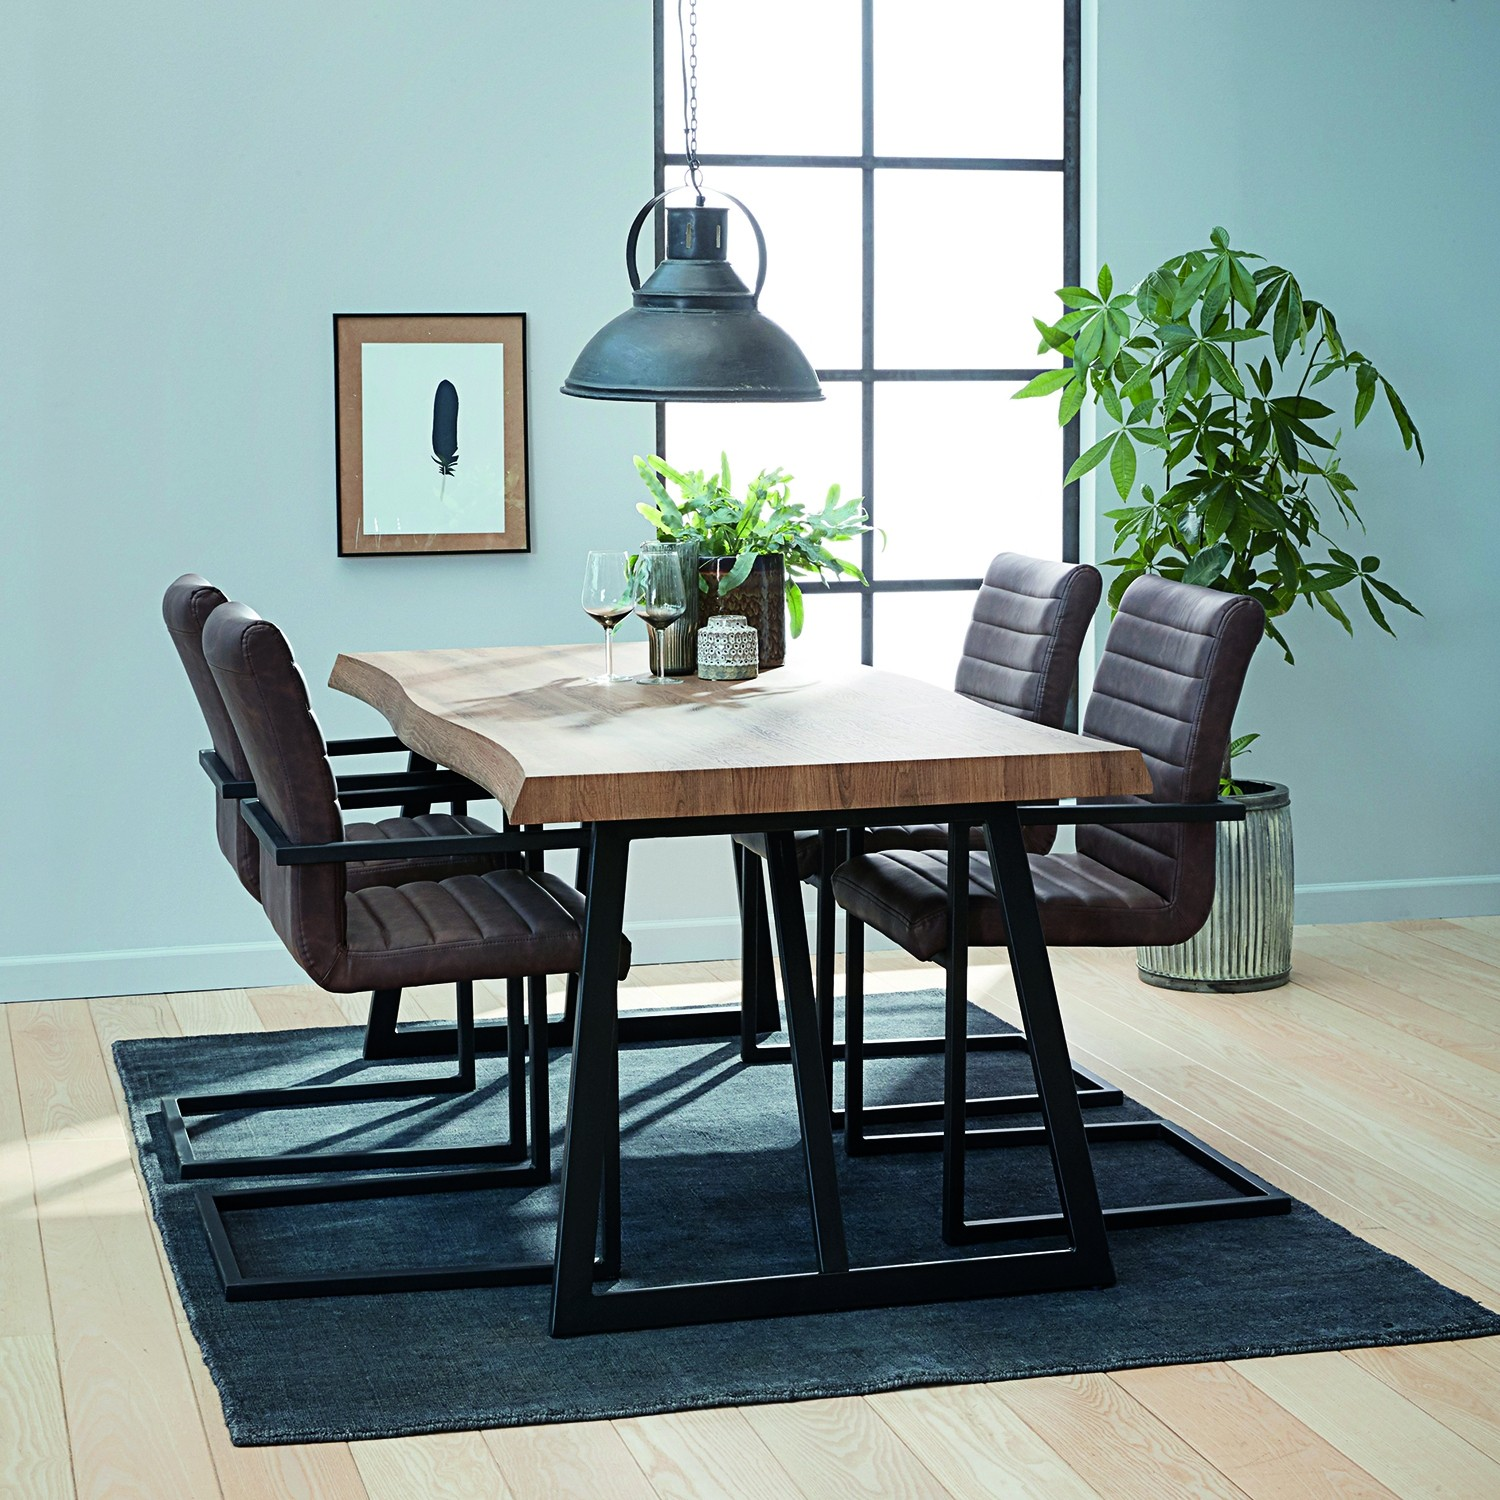 Incredible Melbourne Table 4 Chairs Dining Set Download Free Architecture Designs Viewormadebymaigaardcom